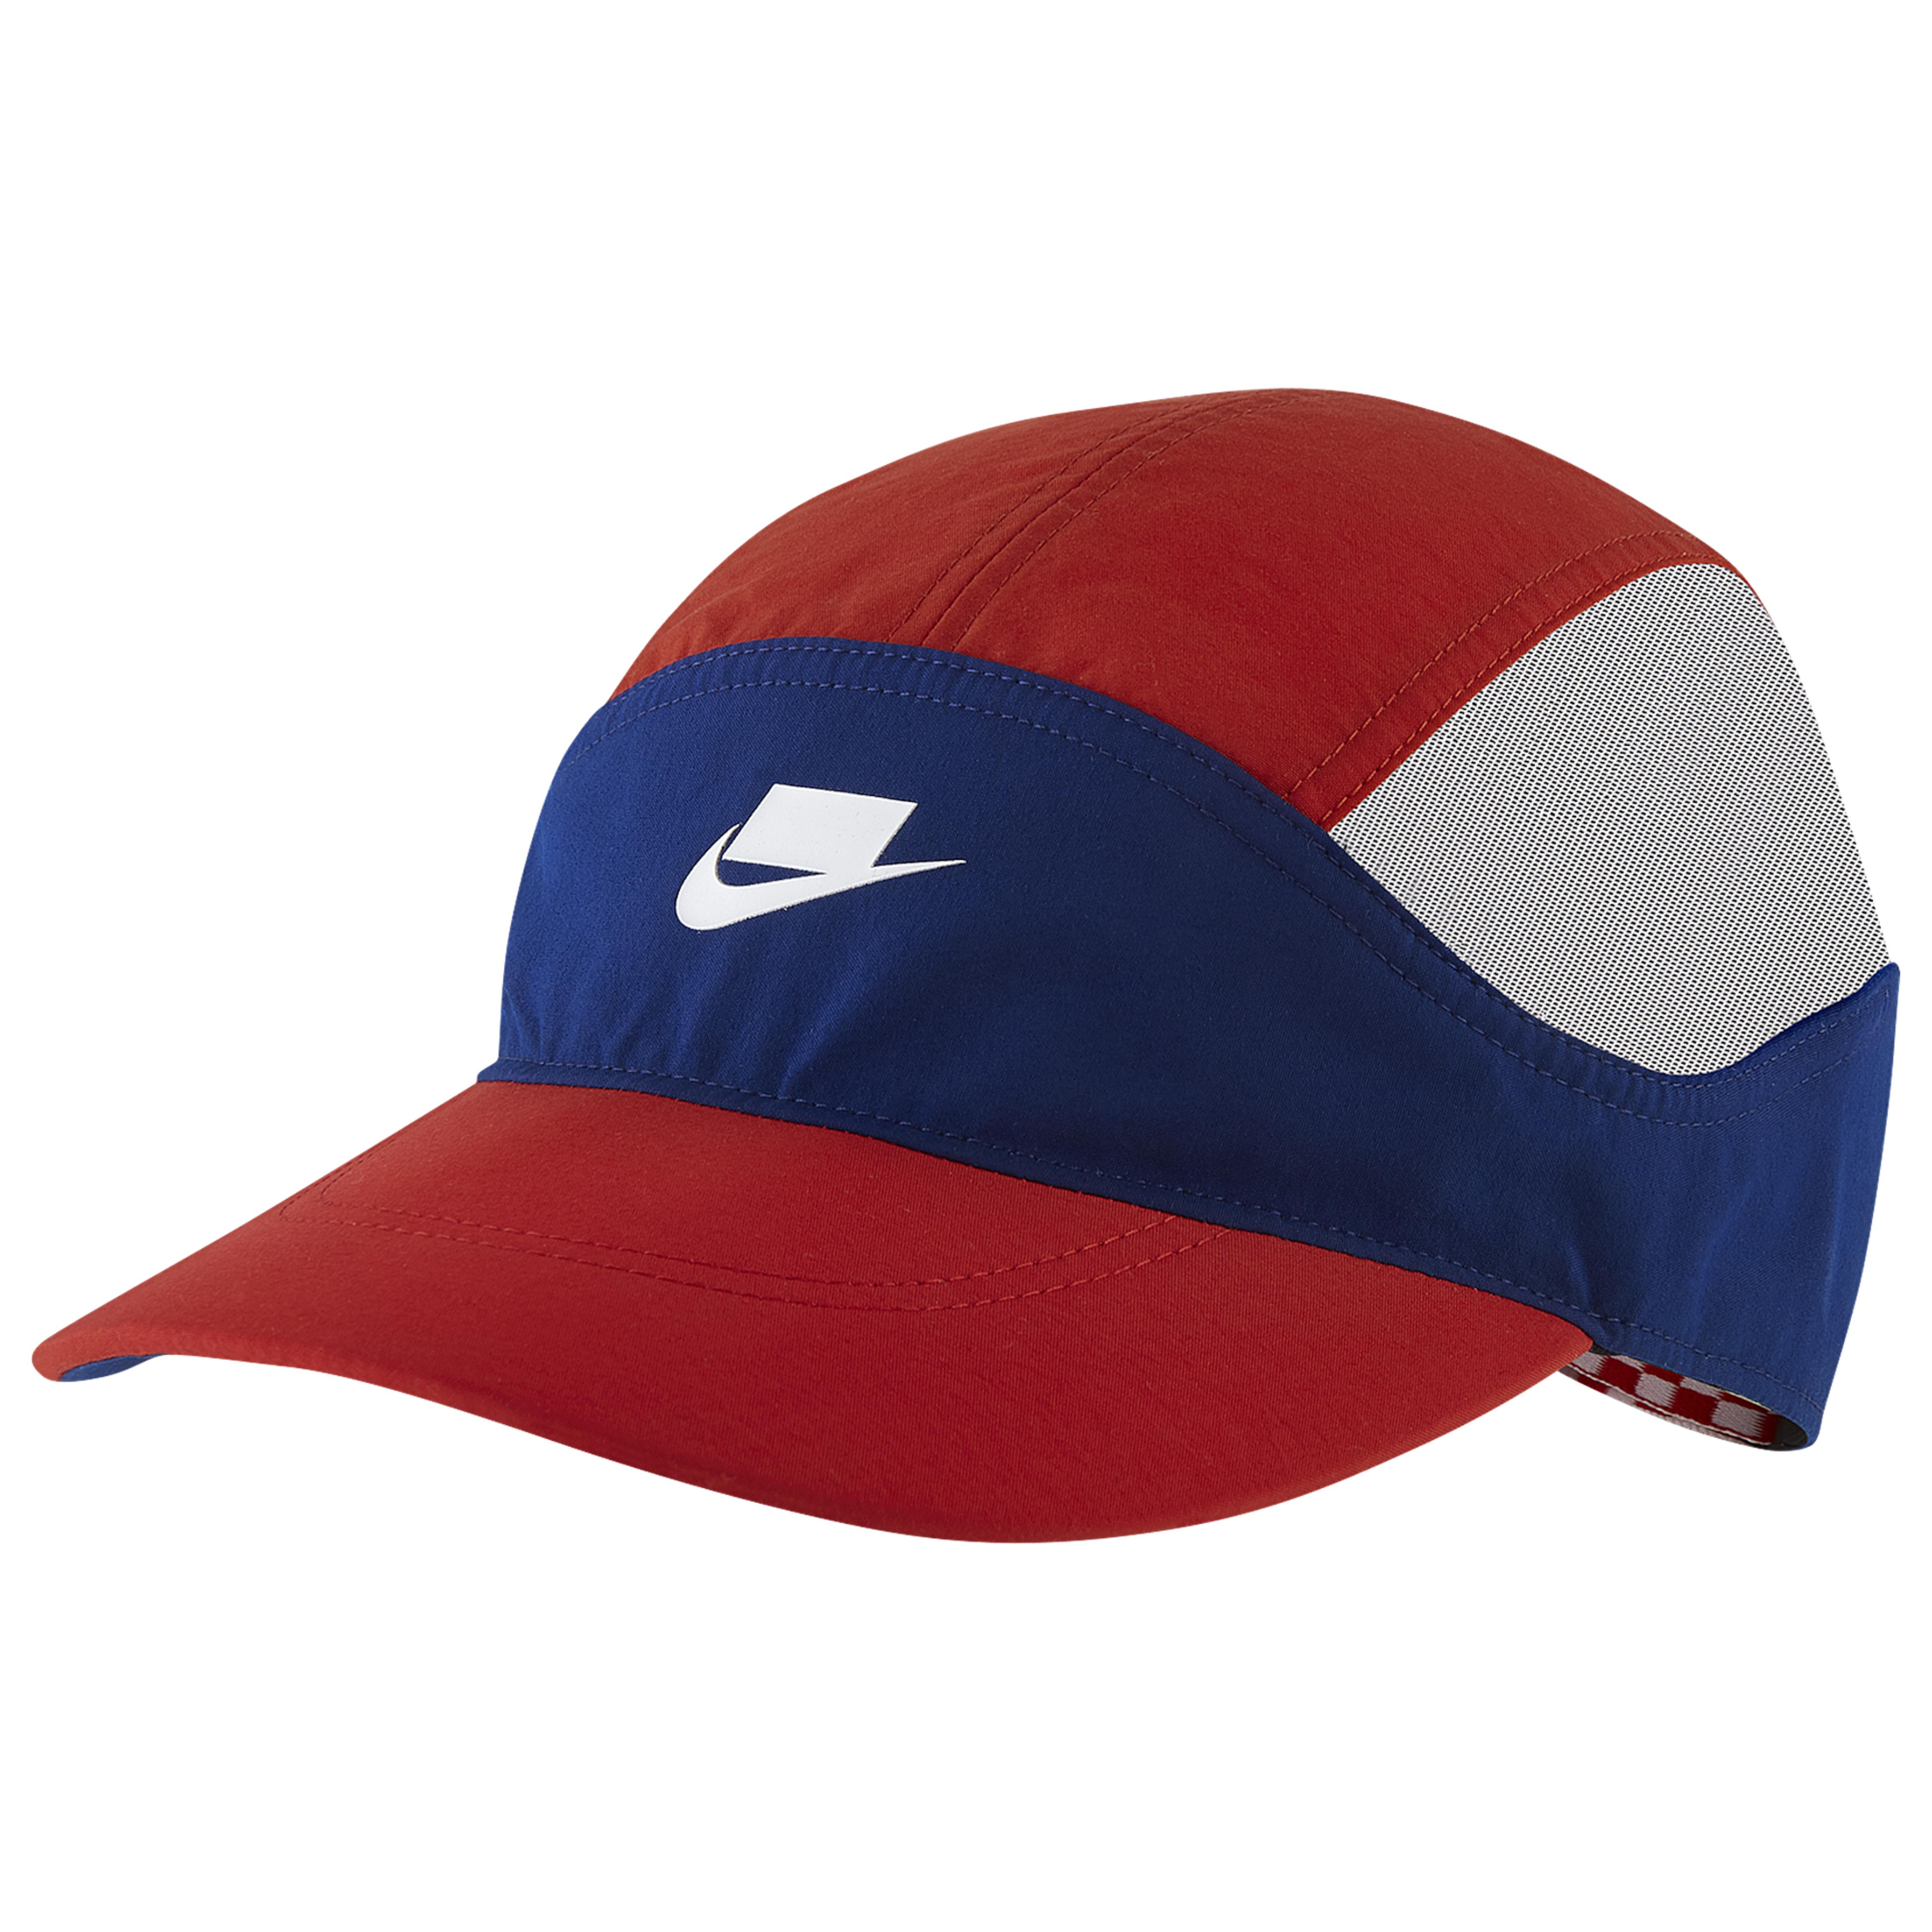 Nike Synthetic Tailwind Cap in Blue/Red